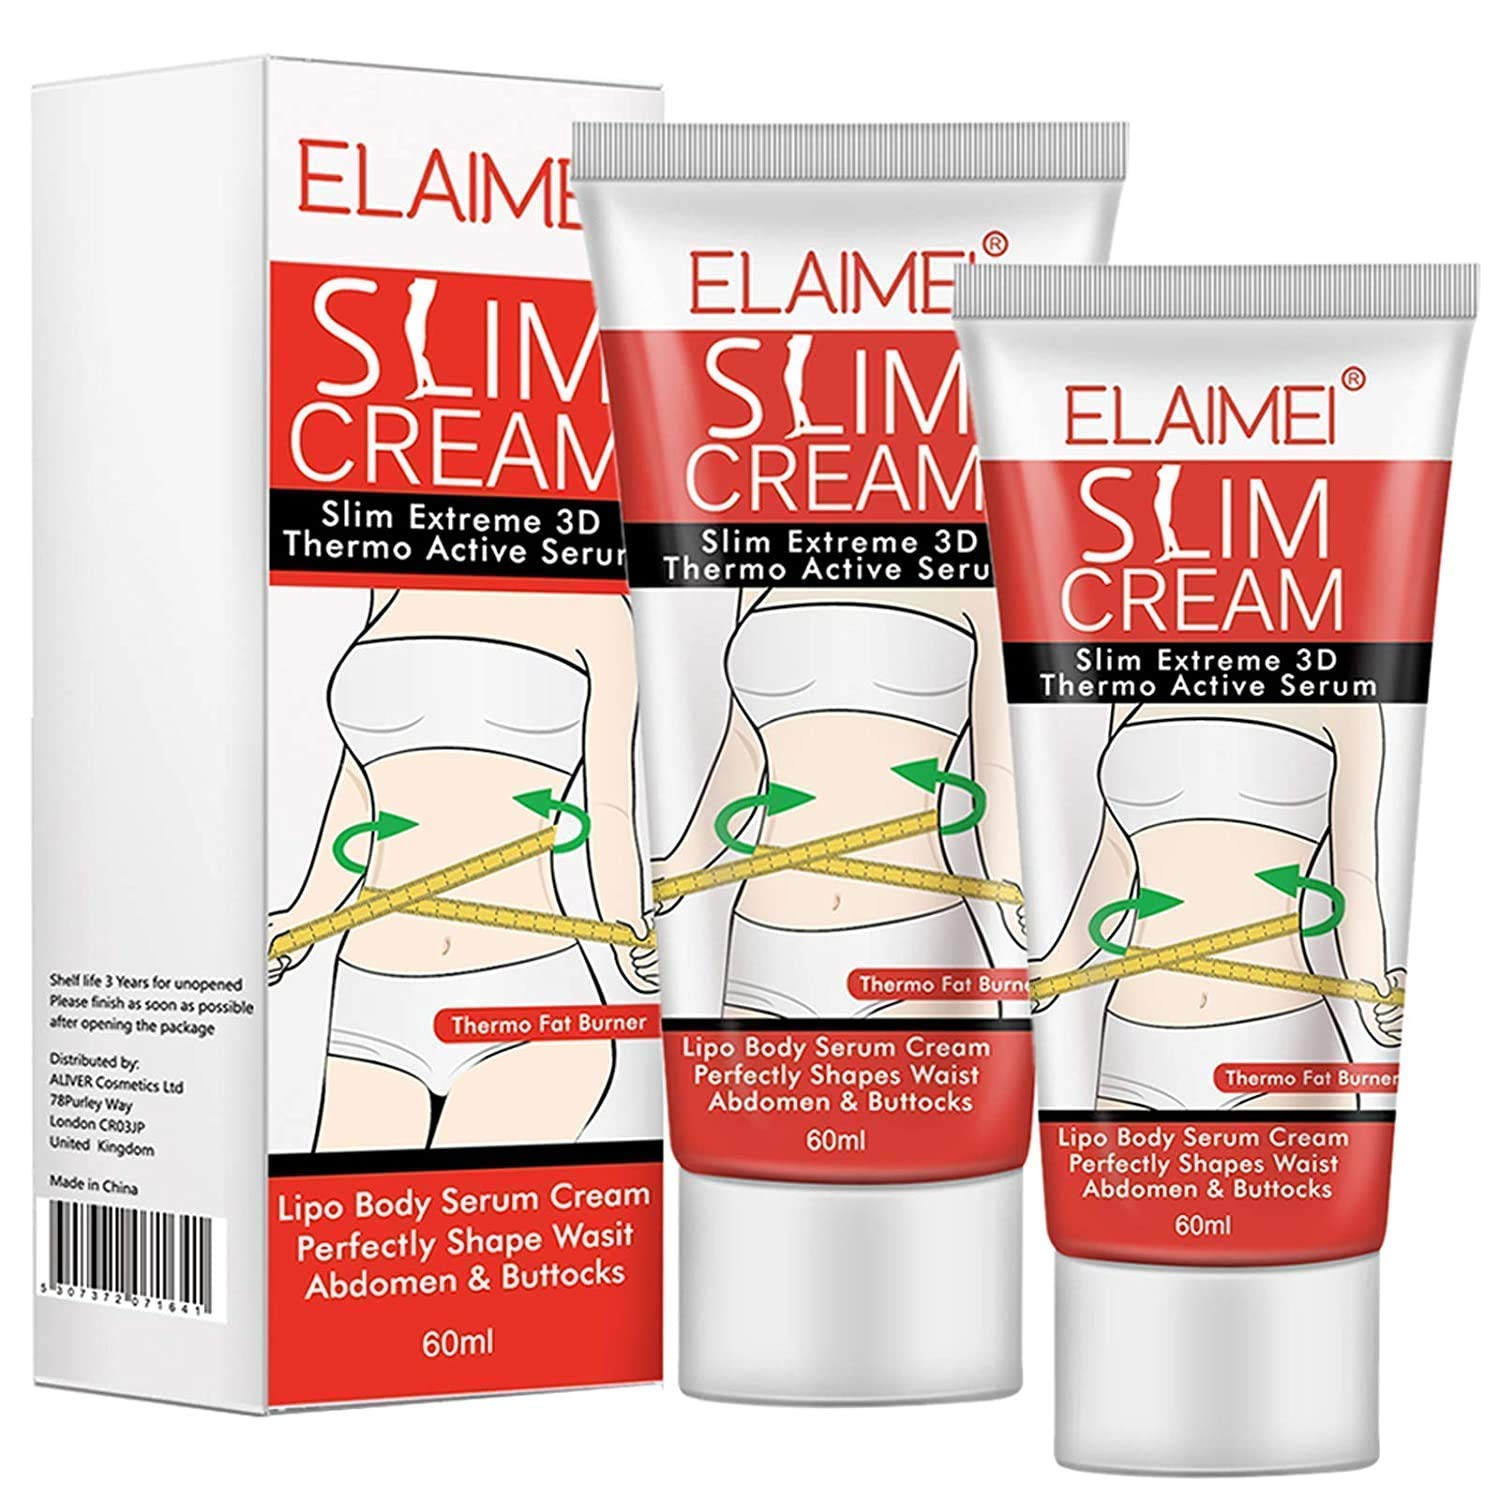 Hot New Direct store products world's highest quality popular Cream 2 Pack Professional Firming Slimming Crea Cellulite